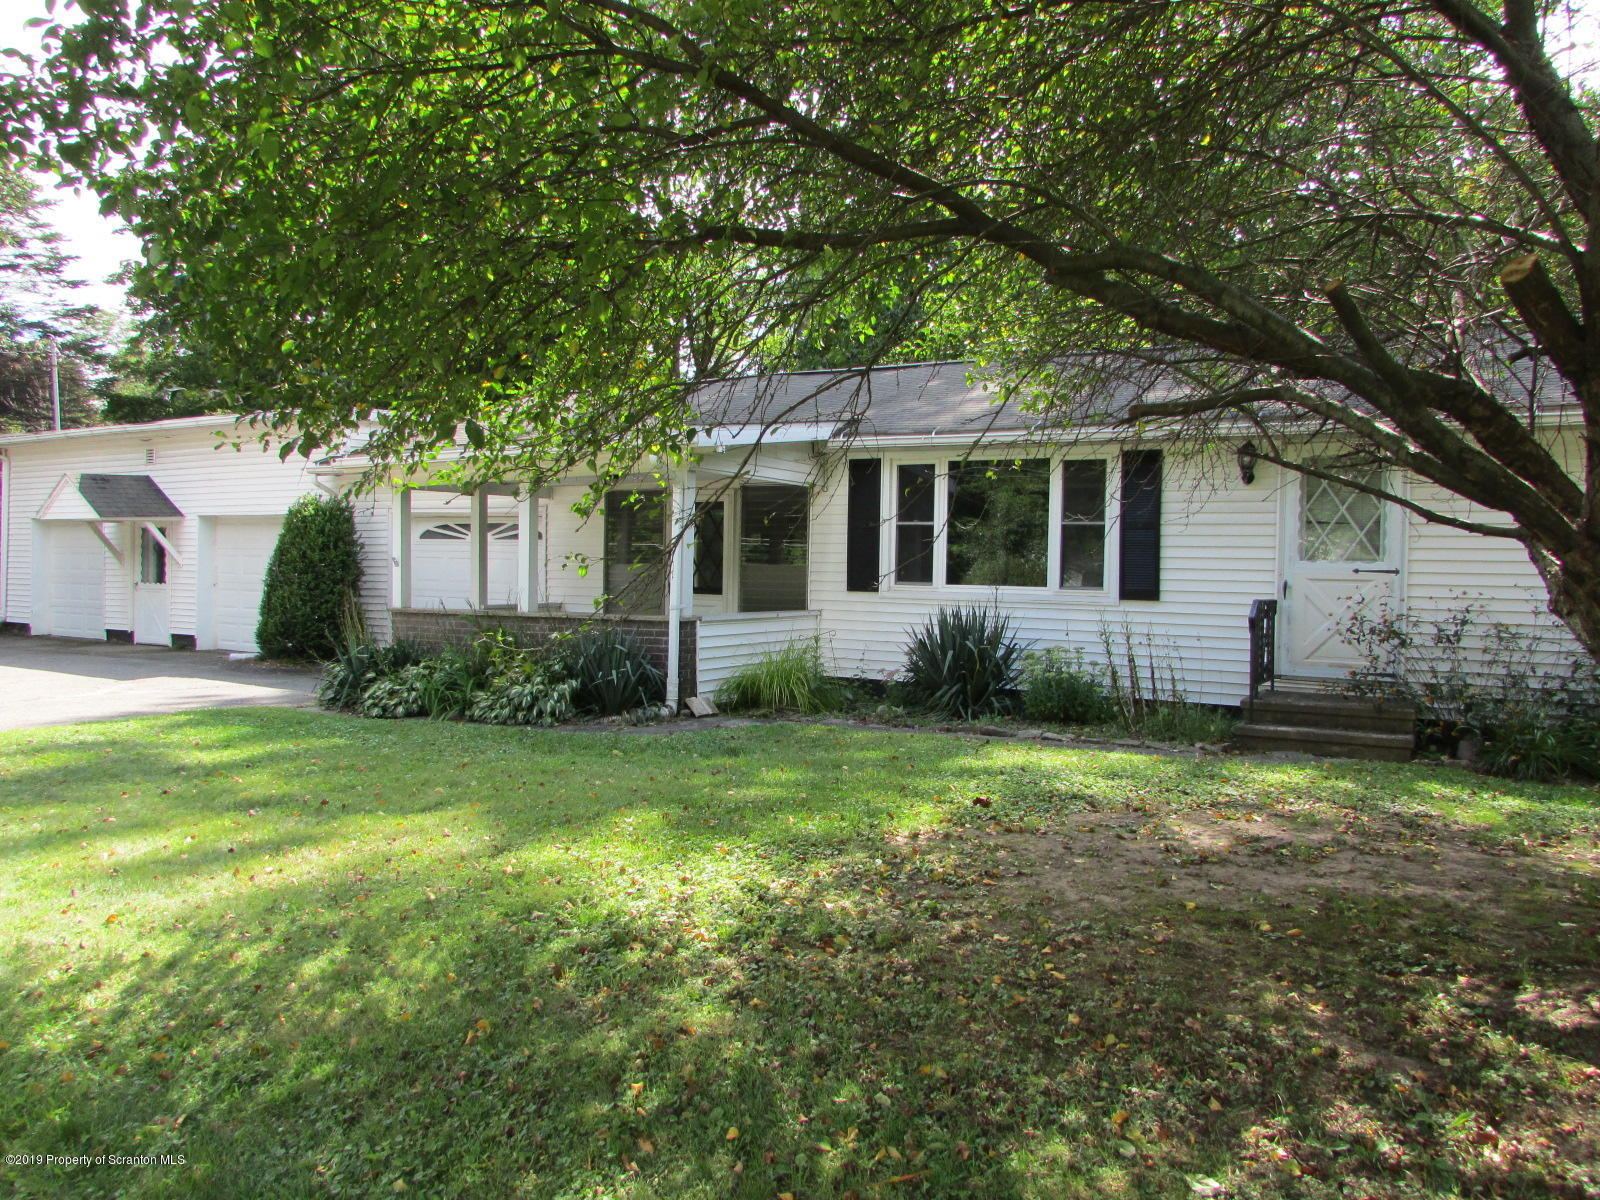 2533 State Route 29 S, Monroe Twp, Pennsylvania 18657, 3 Bedrooms Bedrooms, 6 Rooms Rooms,1 BathroomBathrooms,Single Family,For Sale,State Route 29 S,19-4193